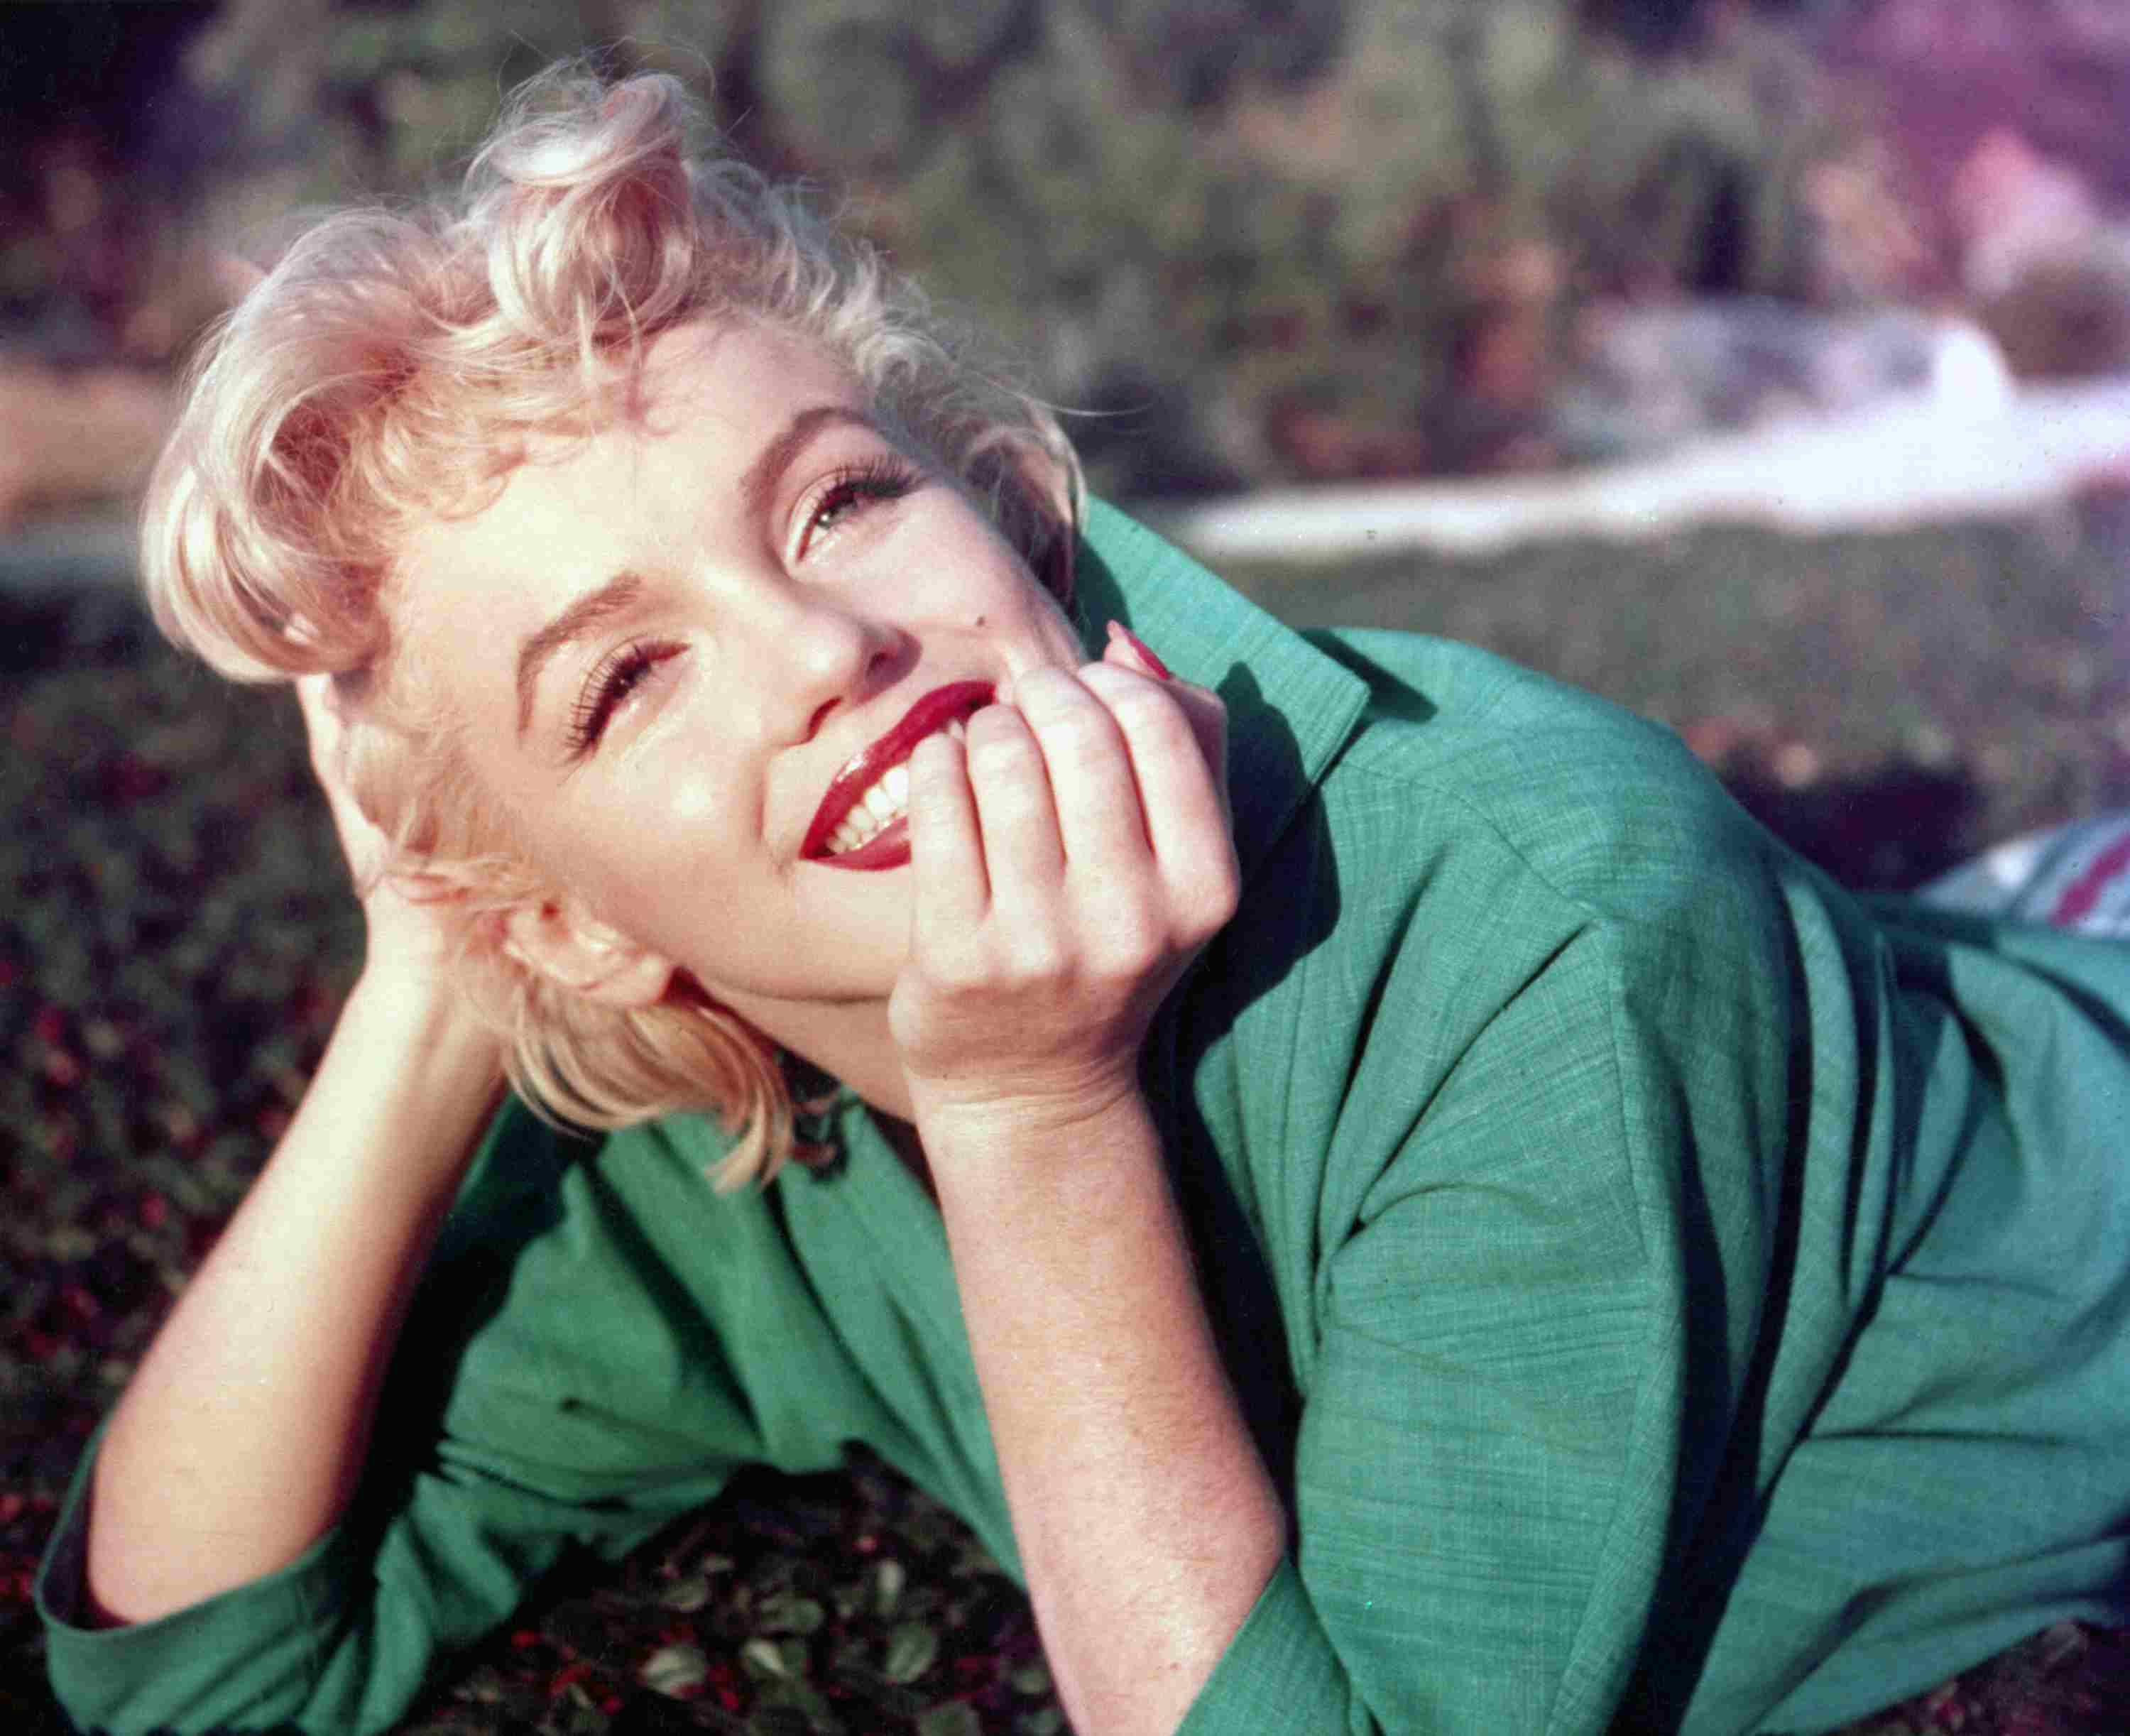 Actress Marilyn Monroe poses for a portrait laying on the grass